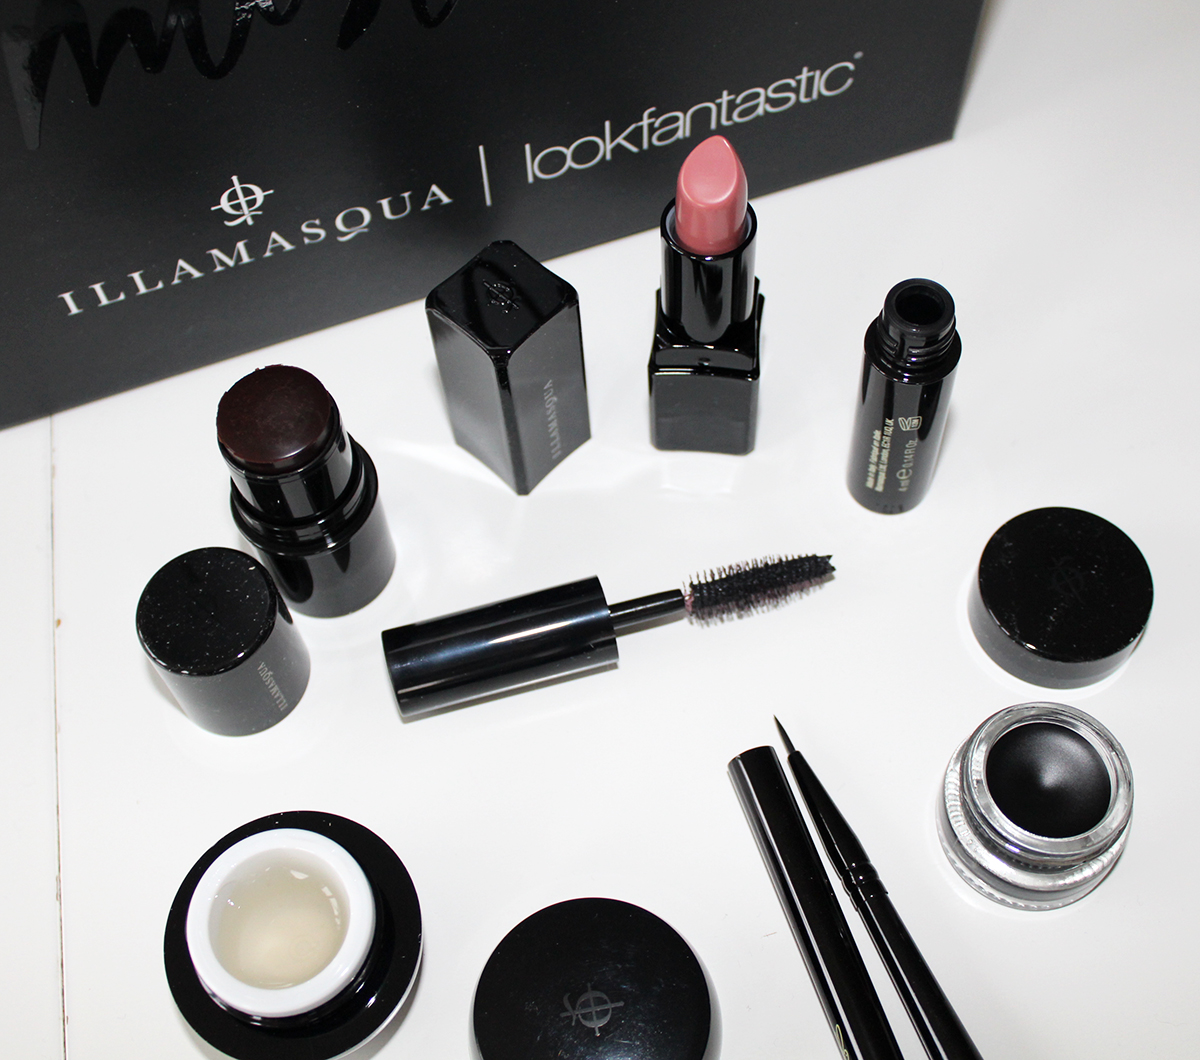 Illamasqua Limited Edition Box